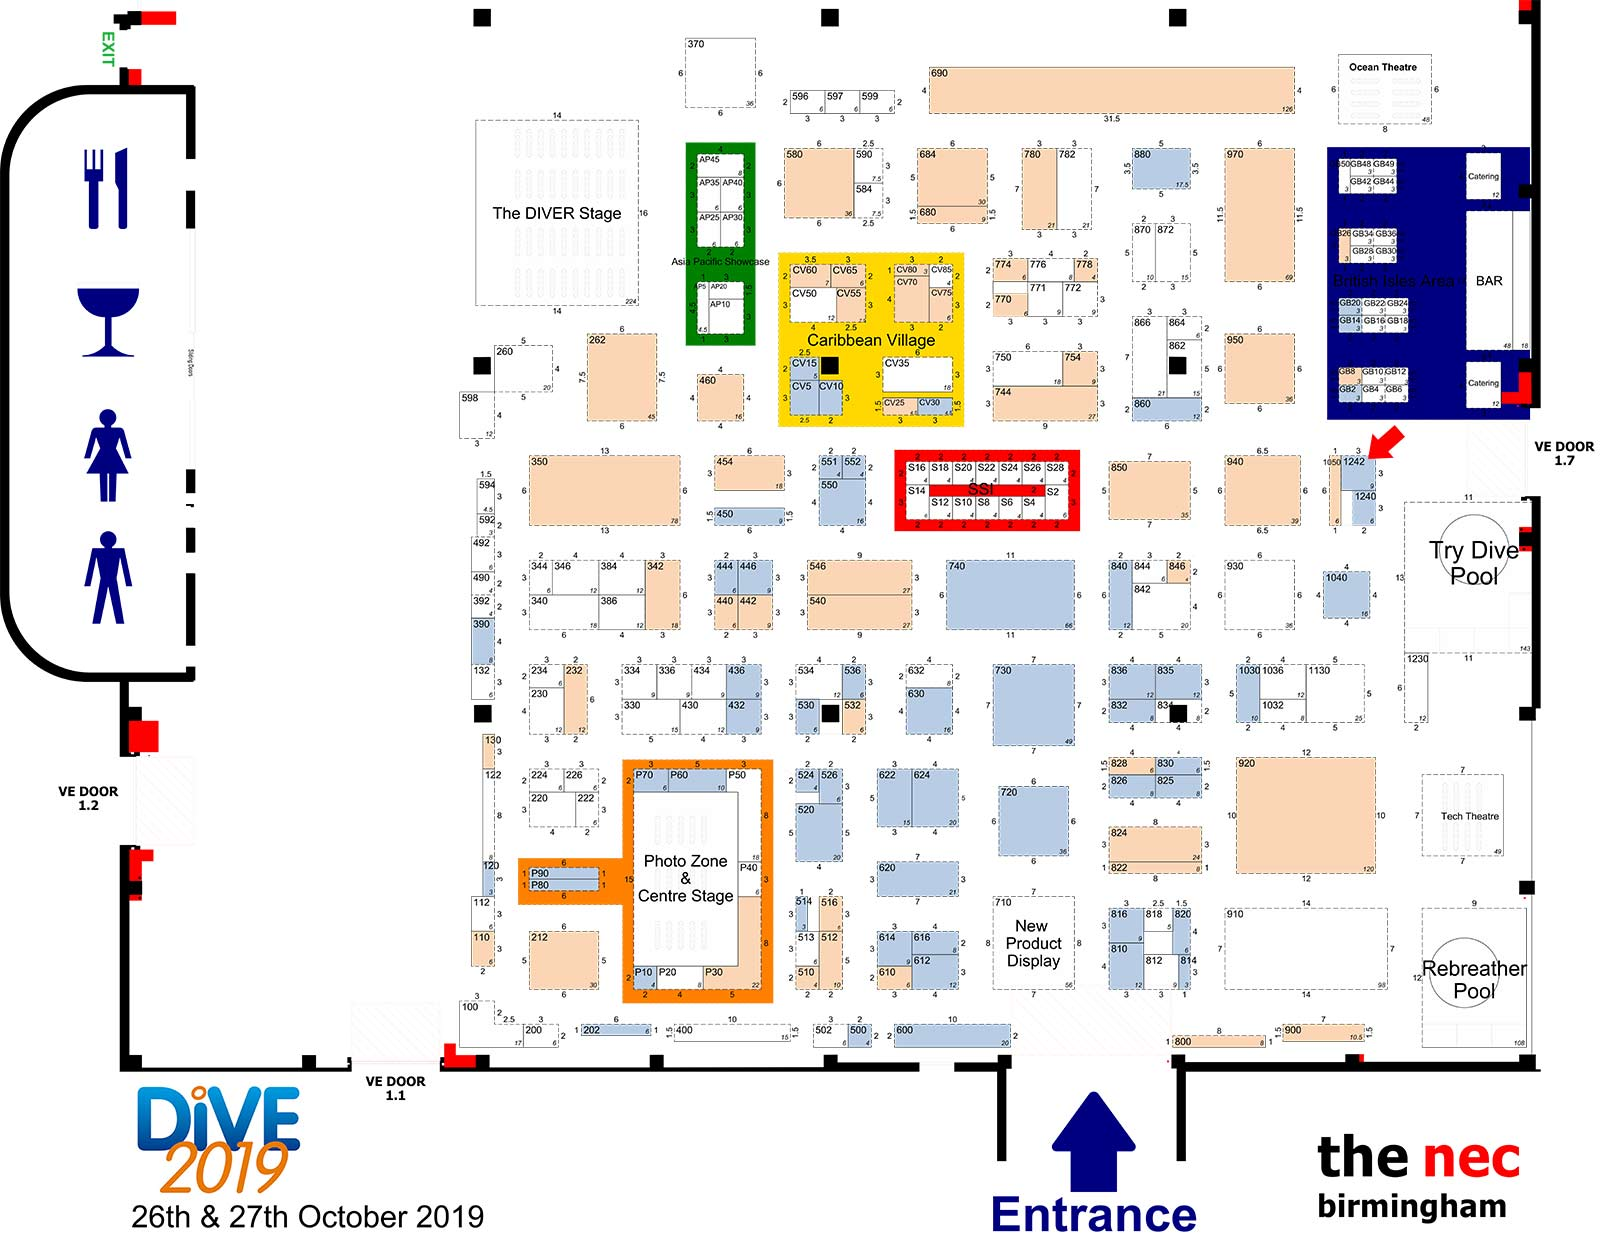 Dive Show 2019 Floor Plan